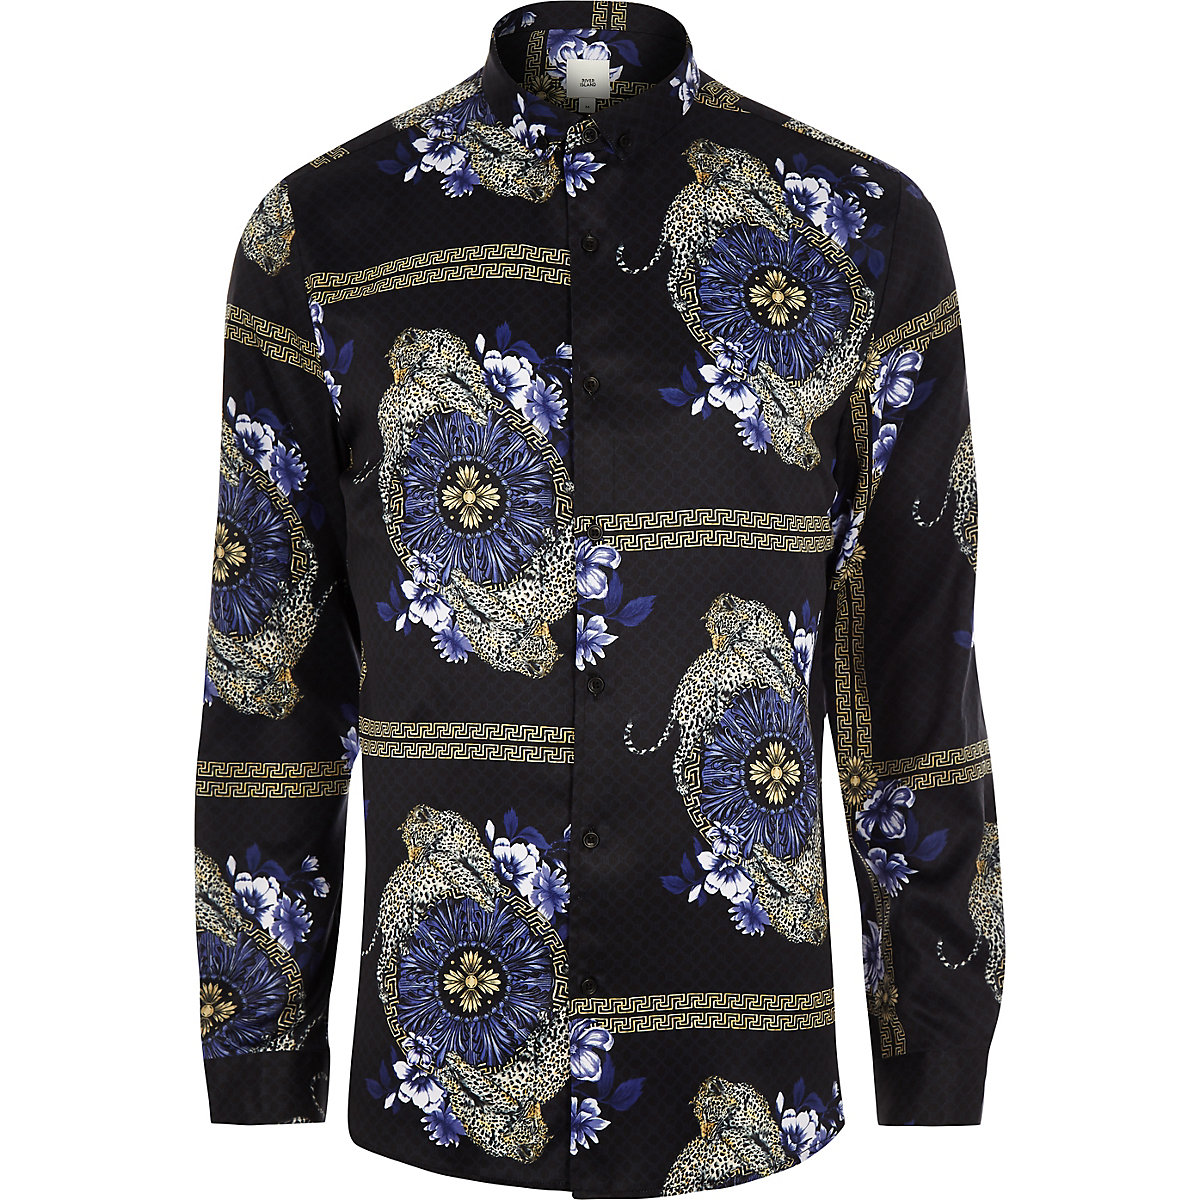 Black baroque leopard print long sleeve shirt